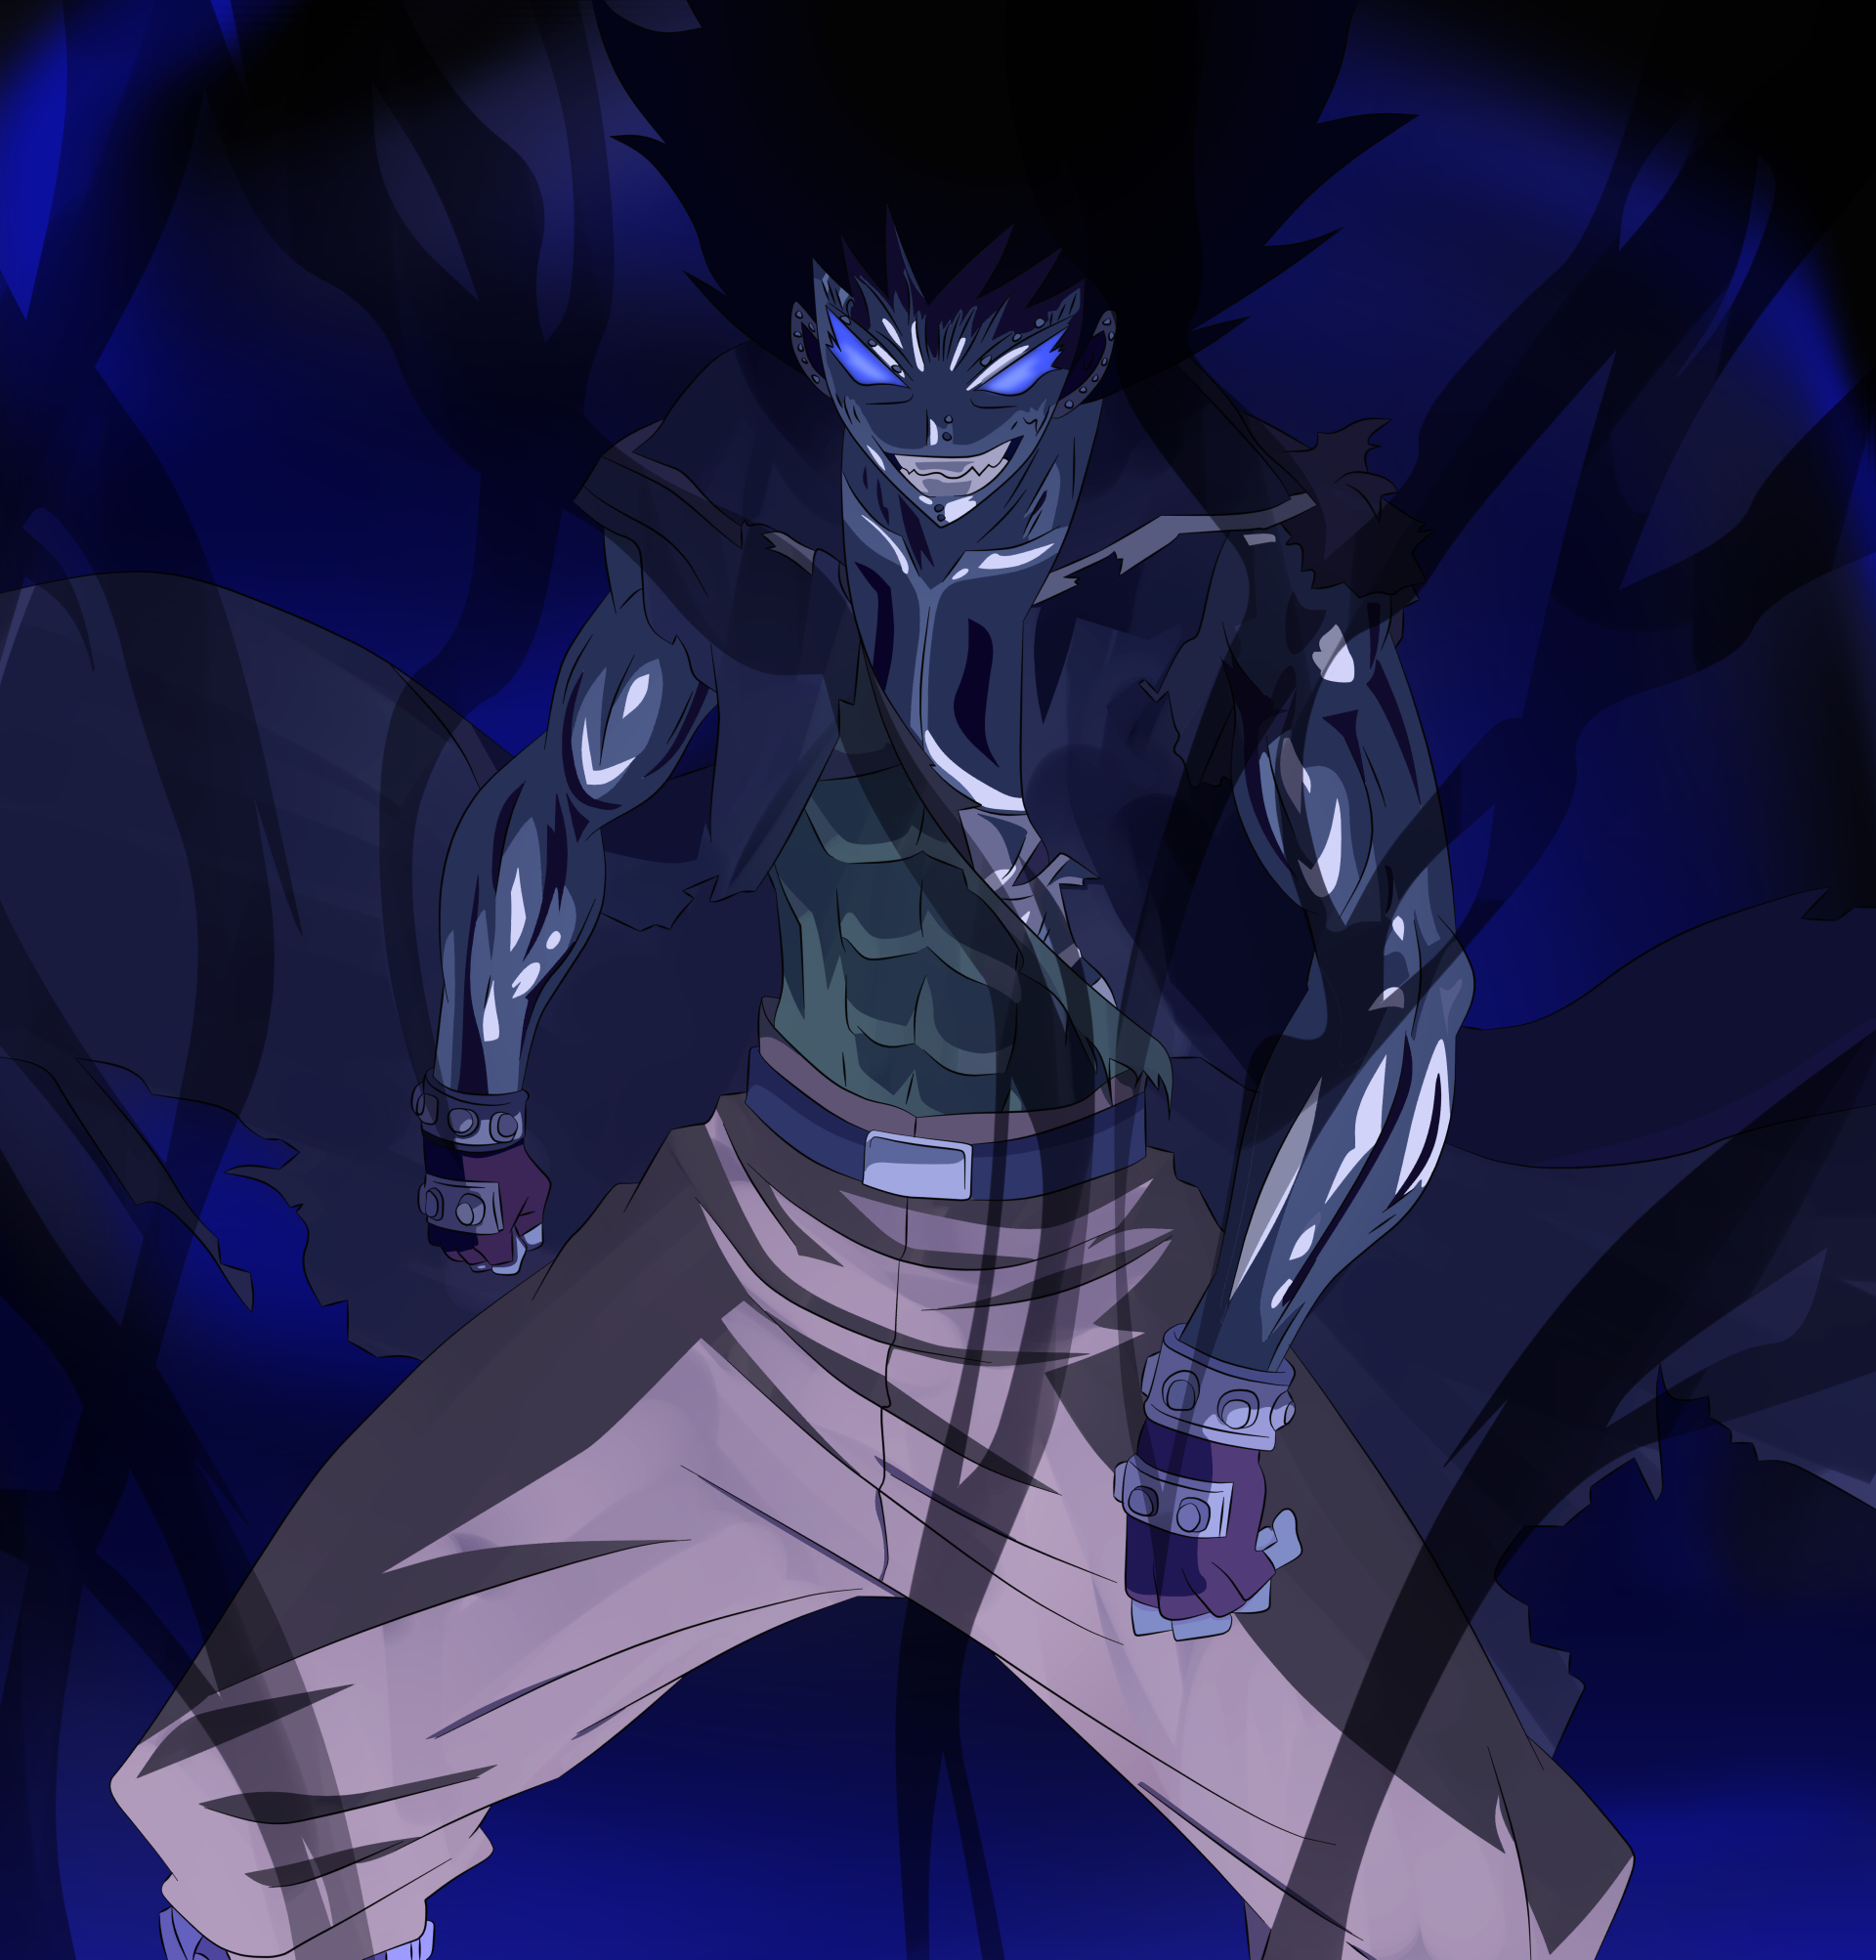 Why Can Gajeel Use Shadow Iron Dragon Mode Gajeel Shadow Iron Dragon